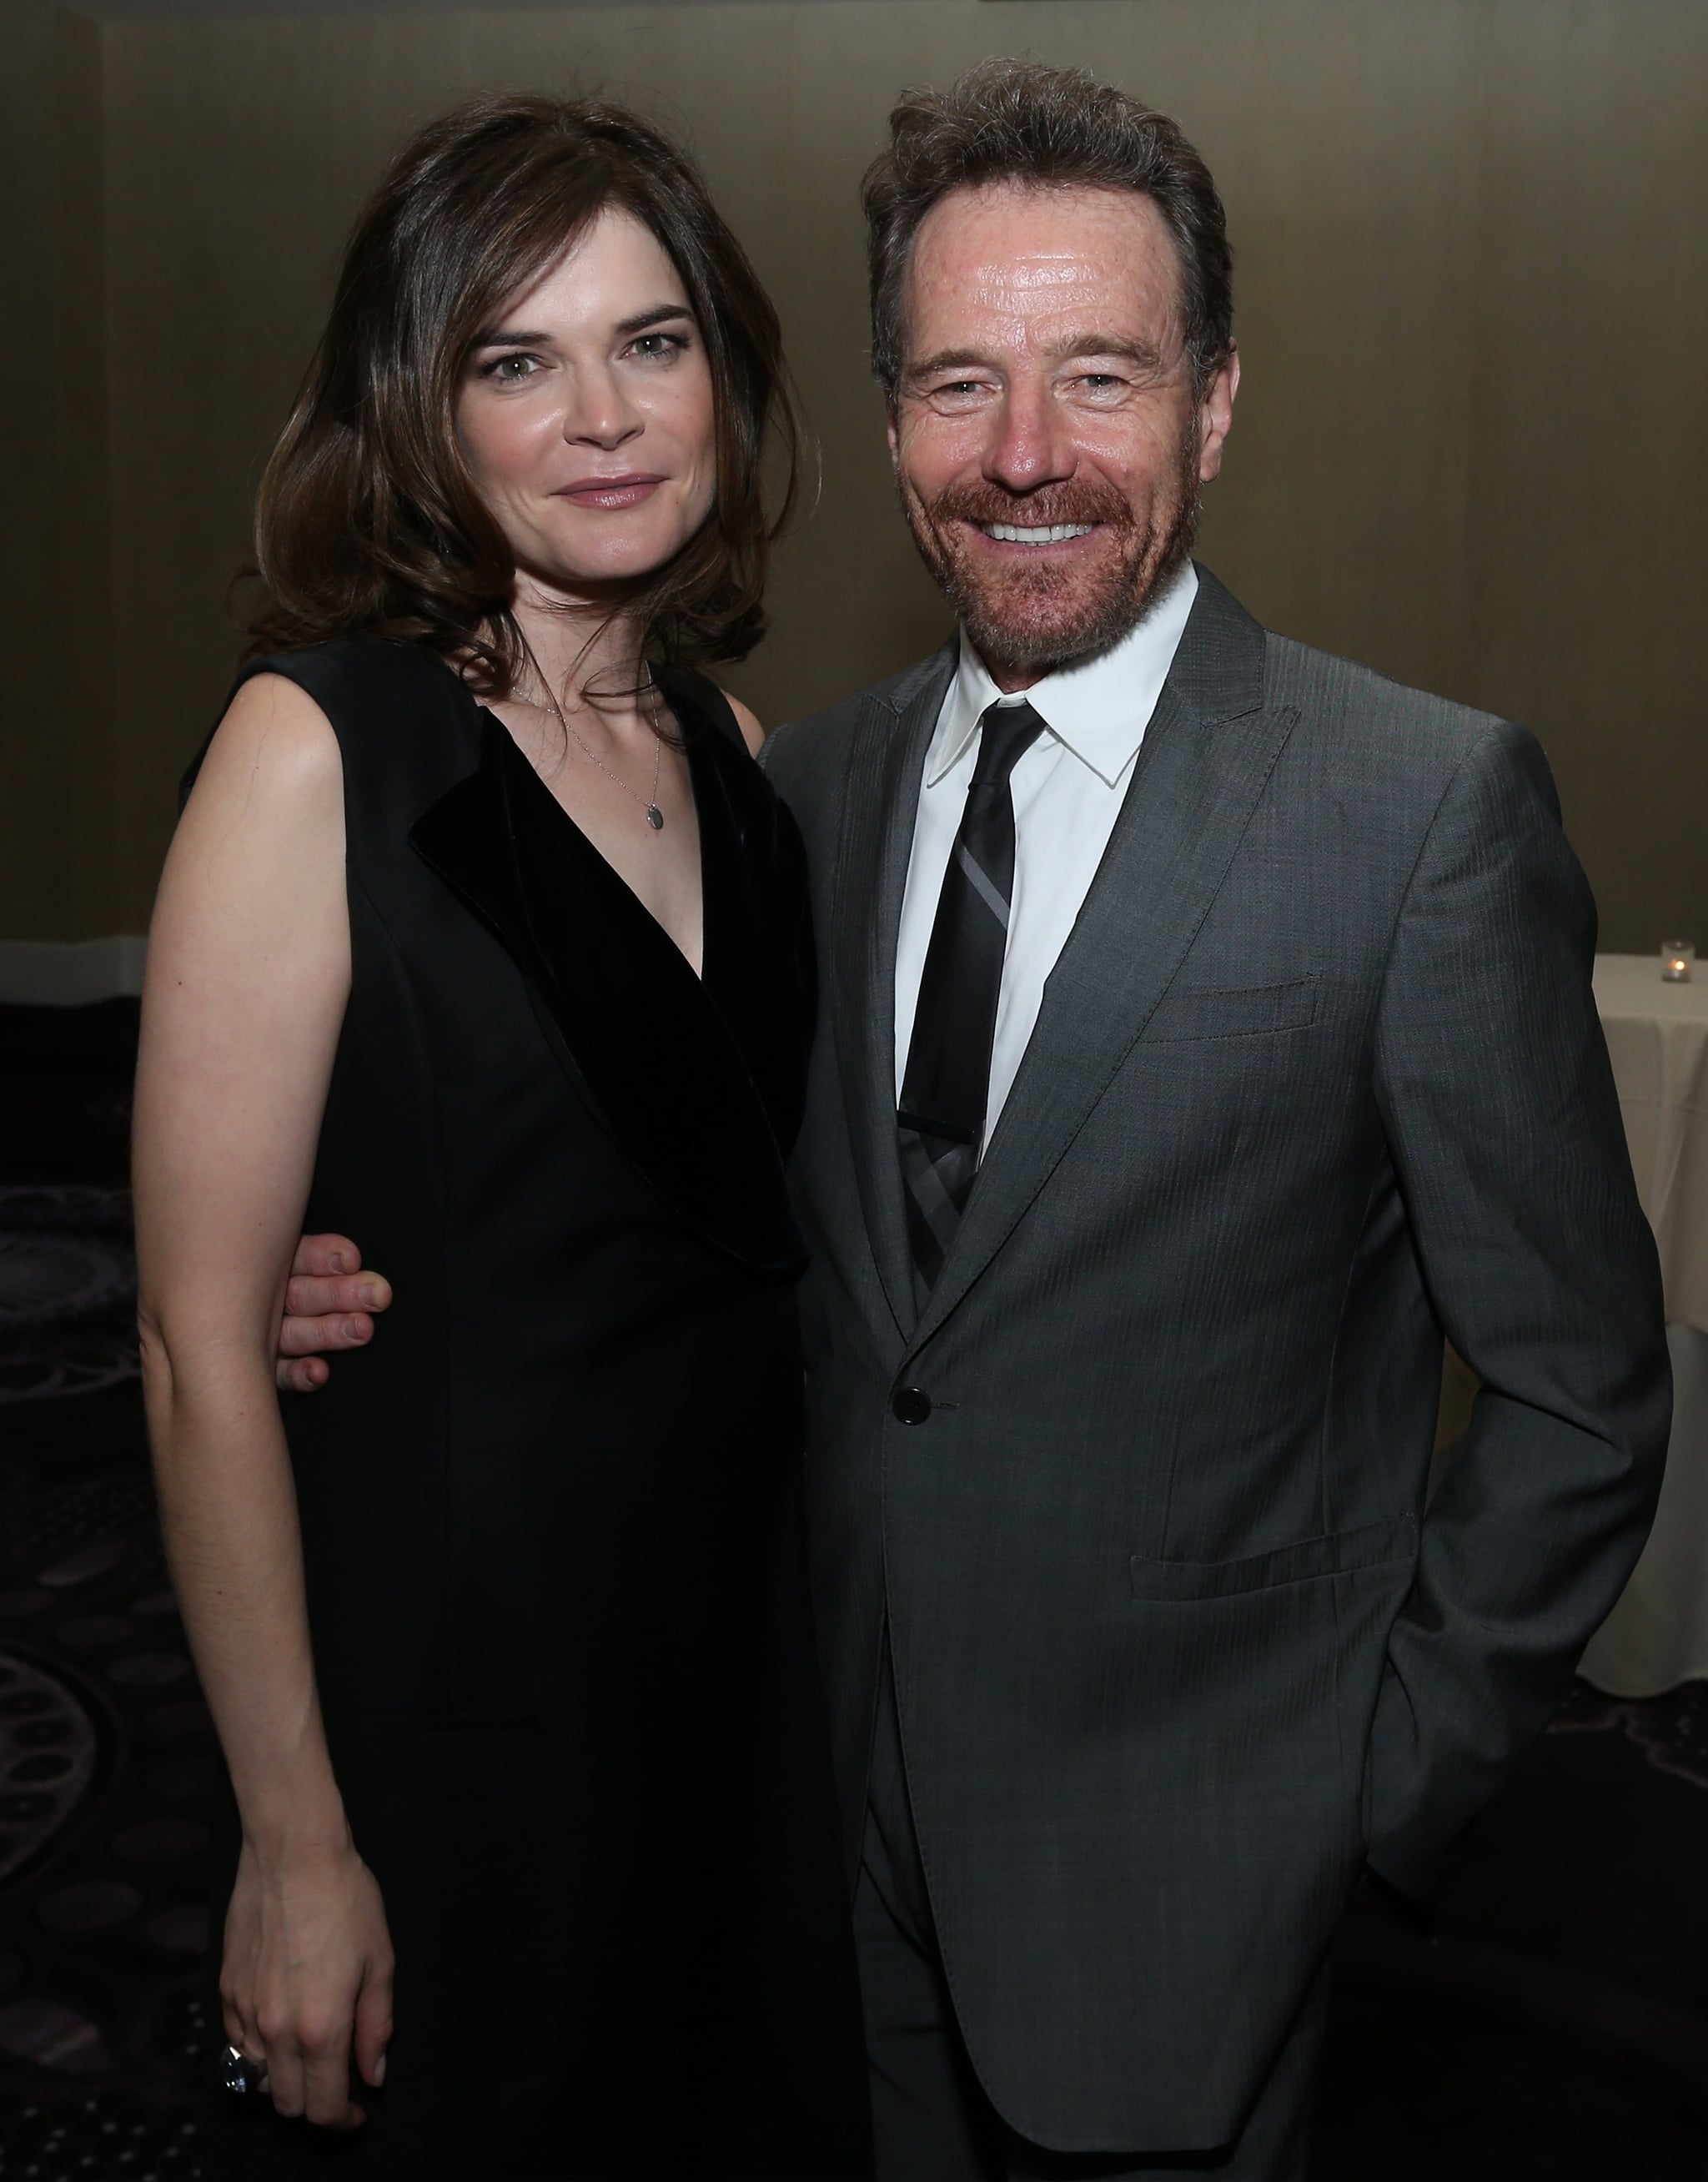 Betsy Brandt and Bryan Cranston showed they don't take the onscreen Breaking Bad drama personally.